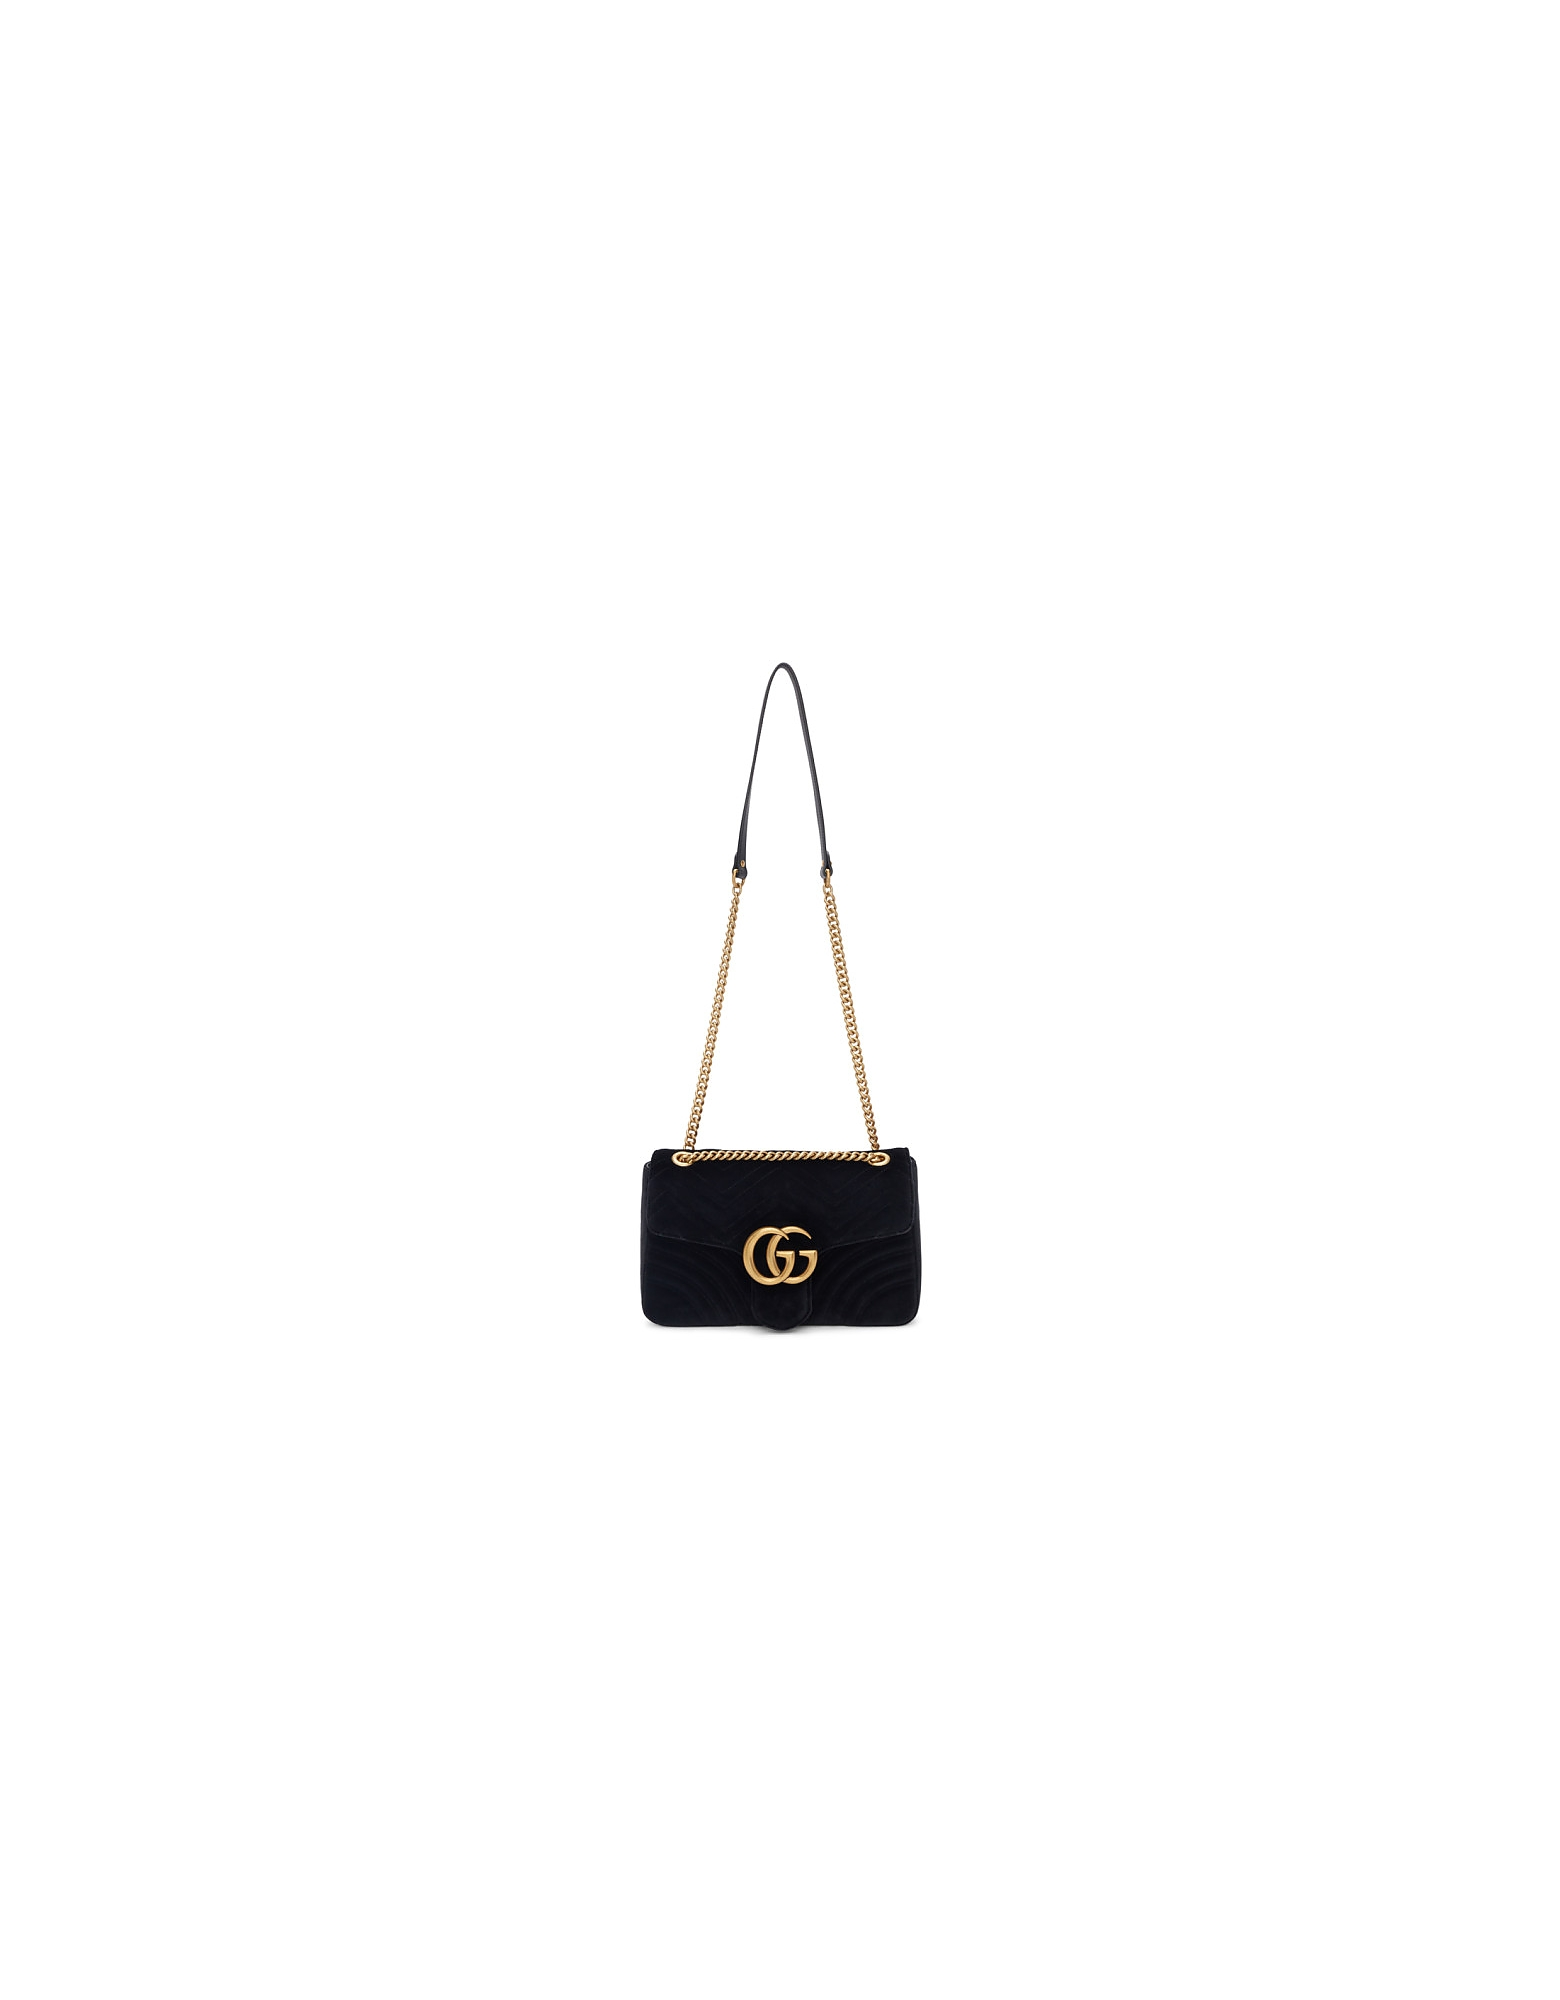 Gucci Designer Handbags, Black Velvet Medium GG Marmont 2.0 Bag